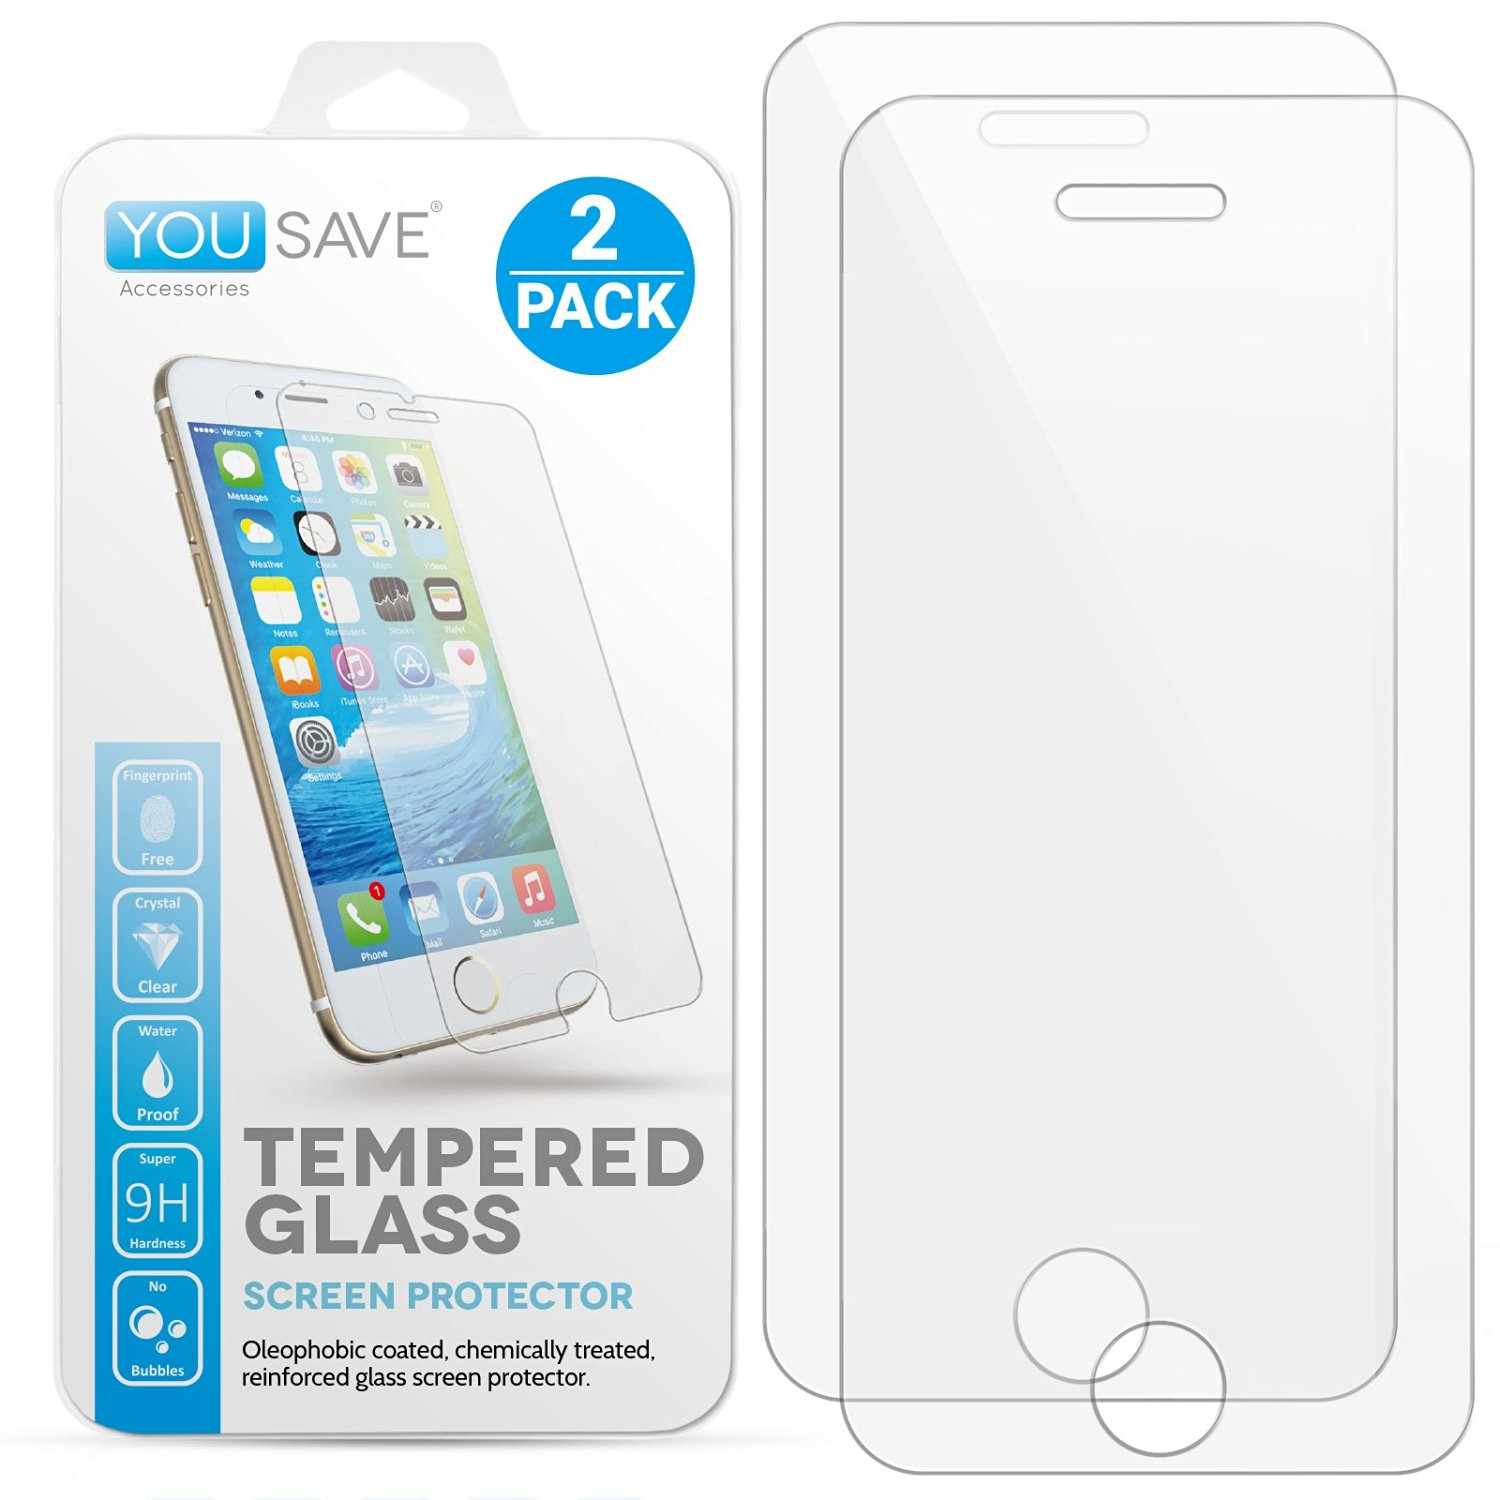 iPhone 5S / 5 / SE / 5C [2-Pack] Glass Screen Protector By Yousave Accessories Crystal Clear Tempered Glass [Ultra Slim 0.3mm / 9H Hardness Rating] Twin Pack